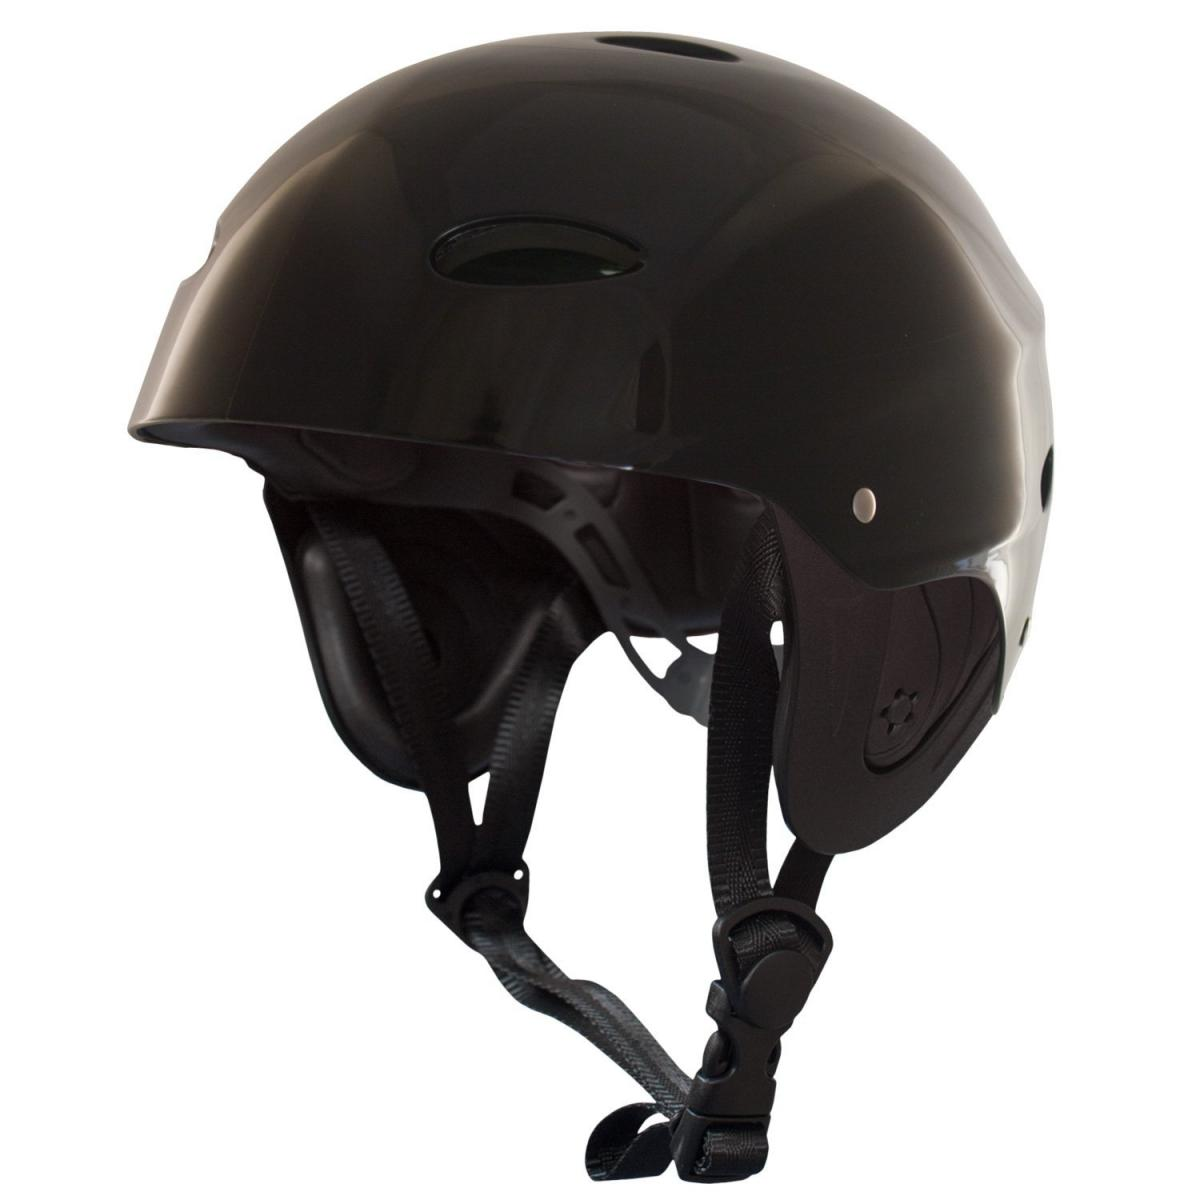 Nexus Watersports Helmet